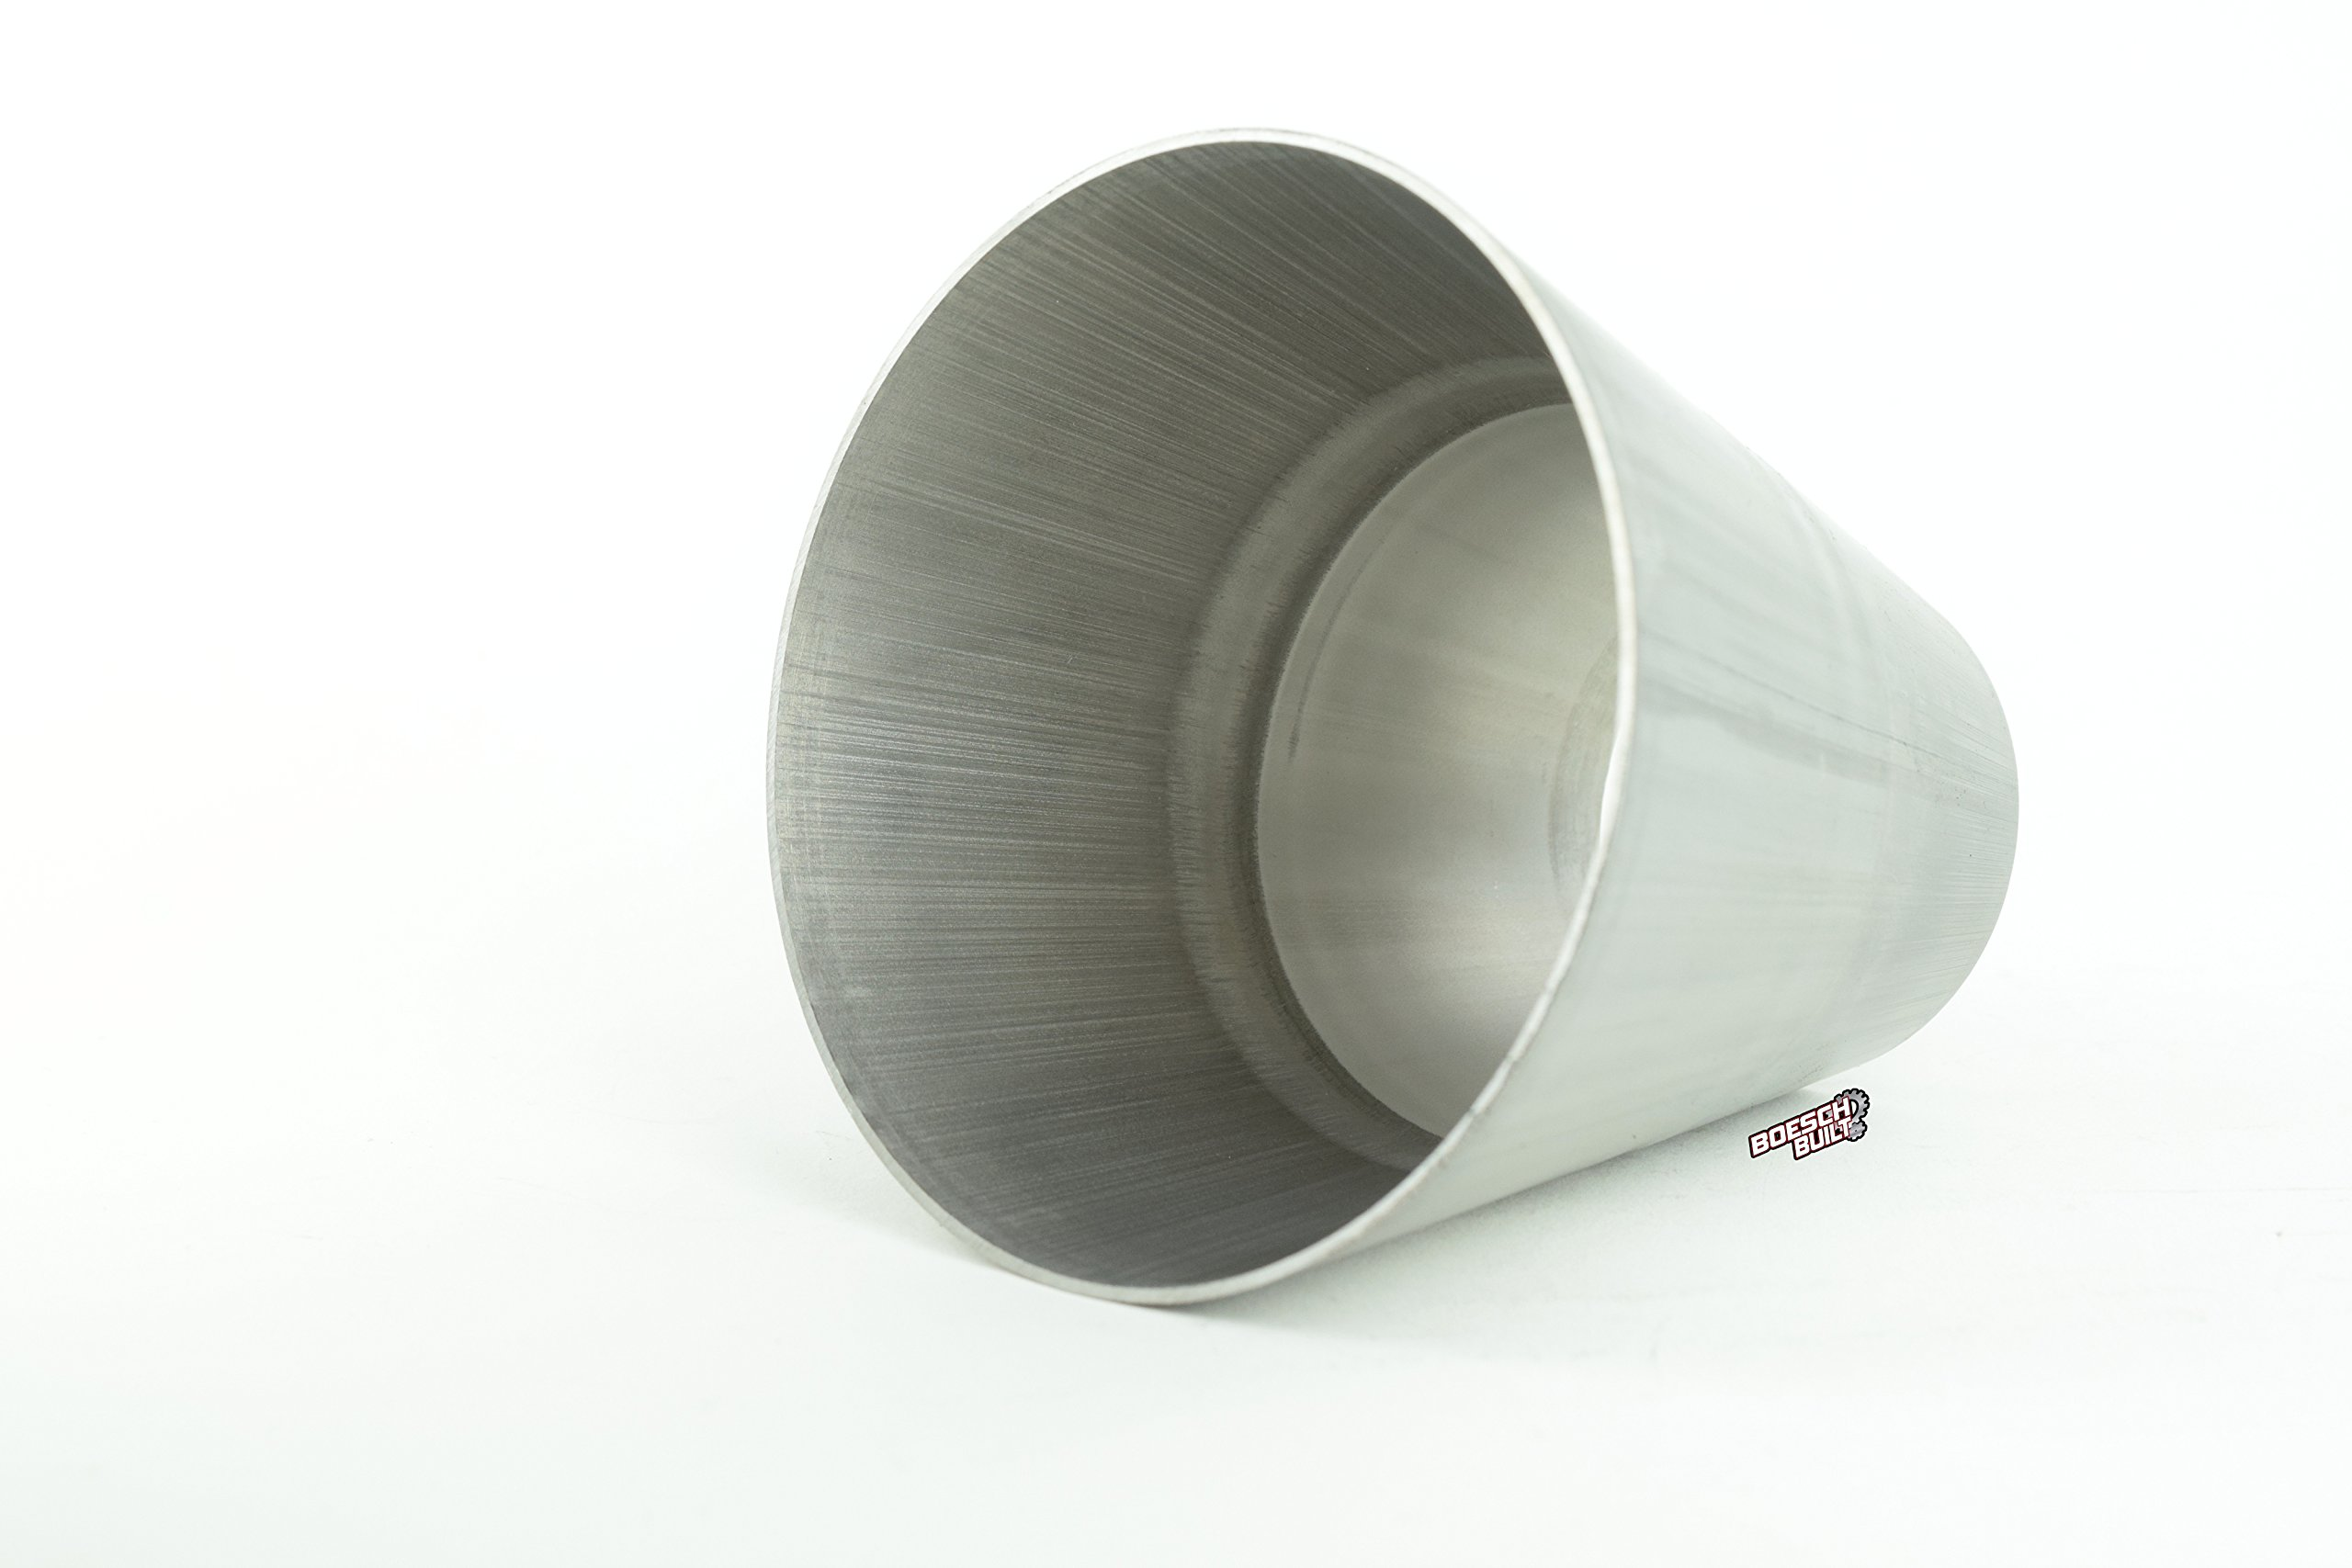 """Boesch Built 1.5"""" (1 1/2) to 3"""" Aluminum Transition (Can Be Cut to Fit 2"""" to 3"""") 1.5"""" to 3"""" Aluminum Conical Cone AT1.5-3"""